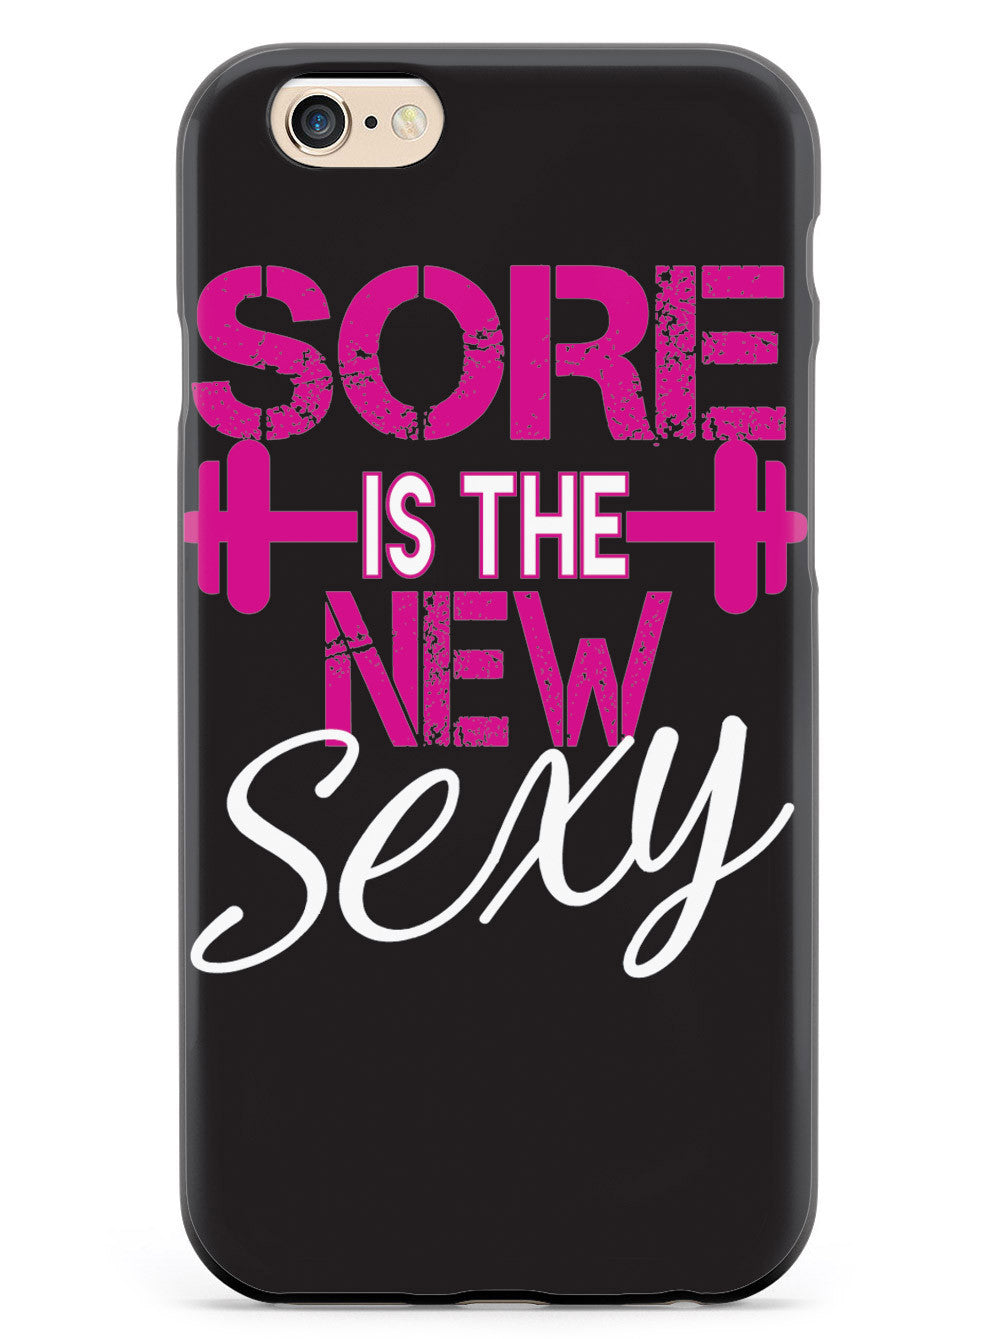 Sore is the New Sexy - Work Out Case